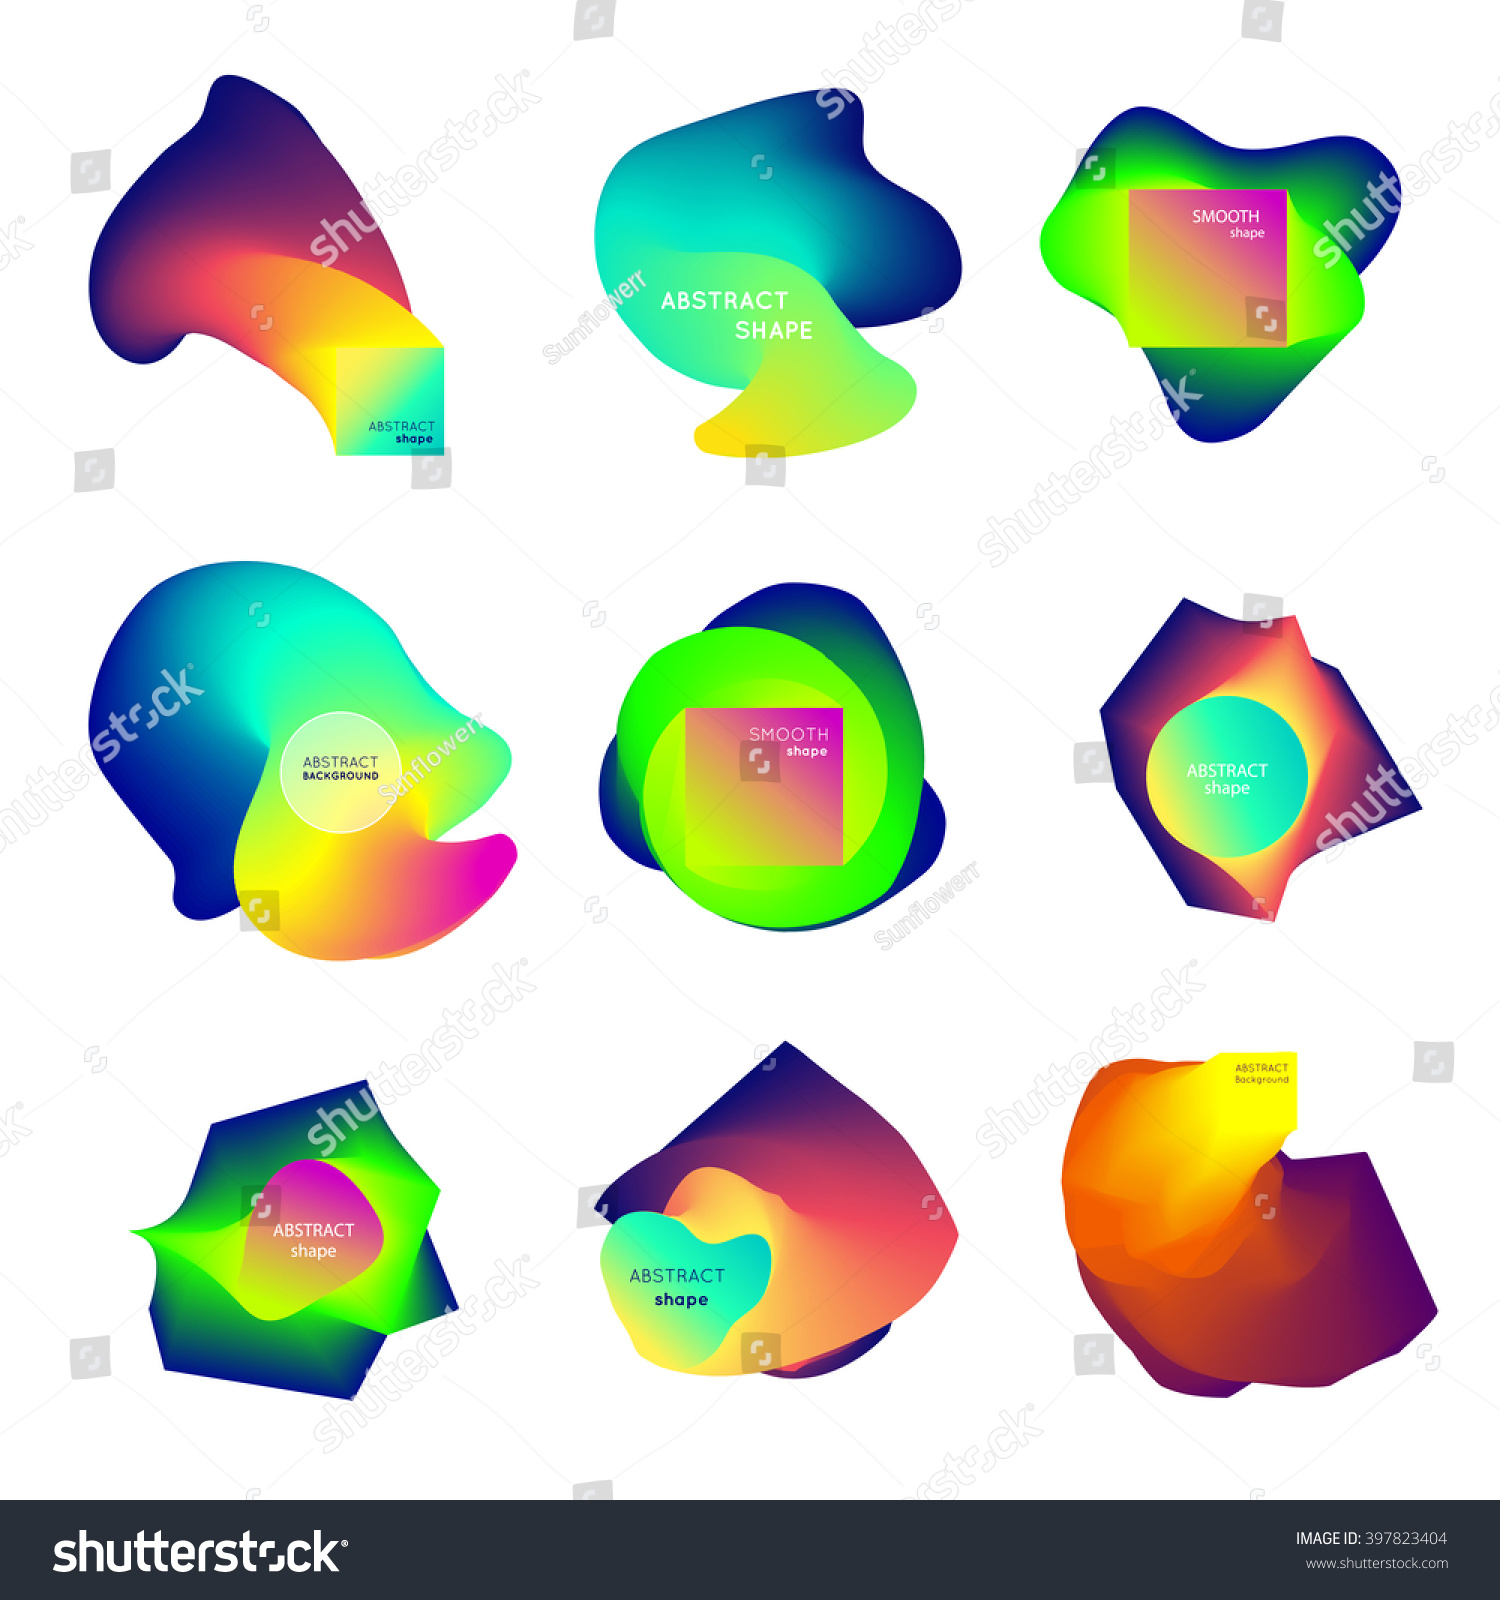 Vector Abstract Shapes Smooth Flow Abstract Stock Vector (2018 ...